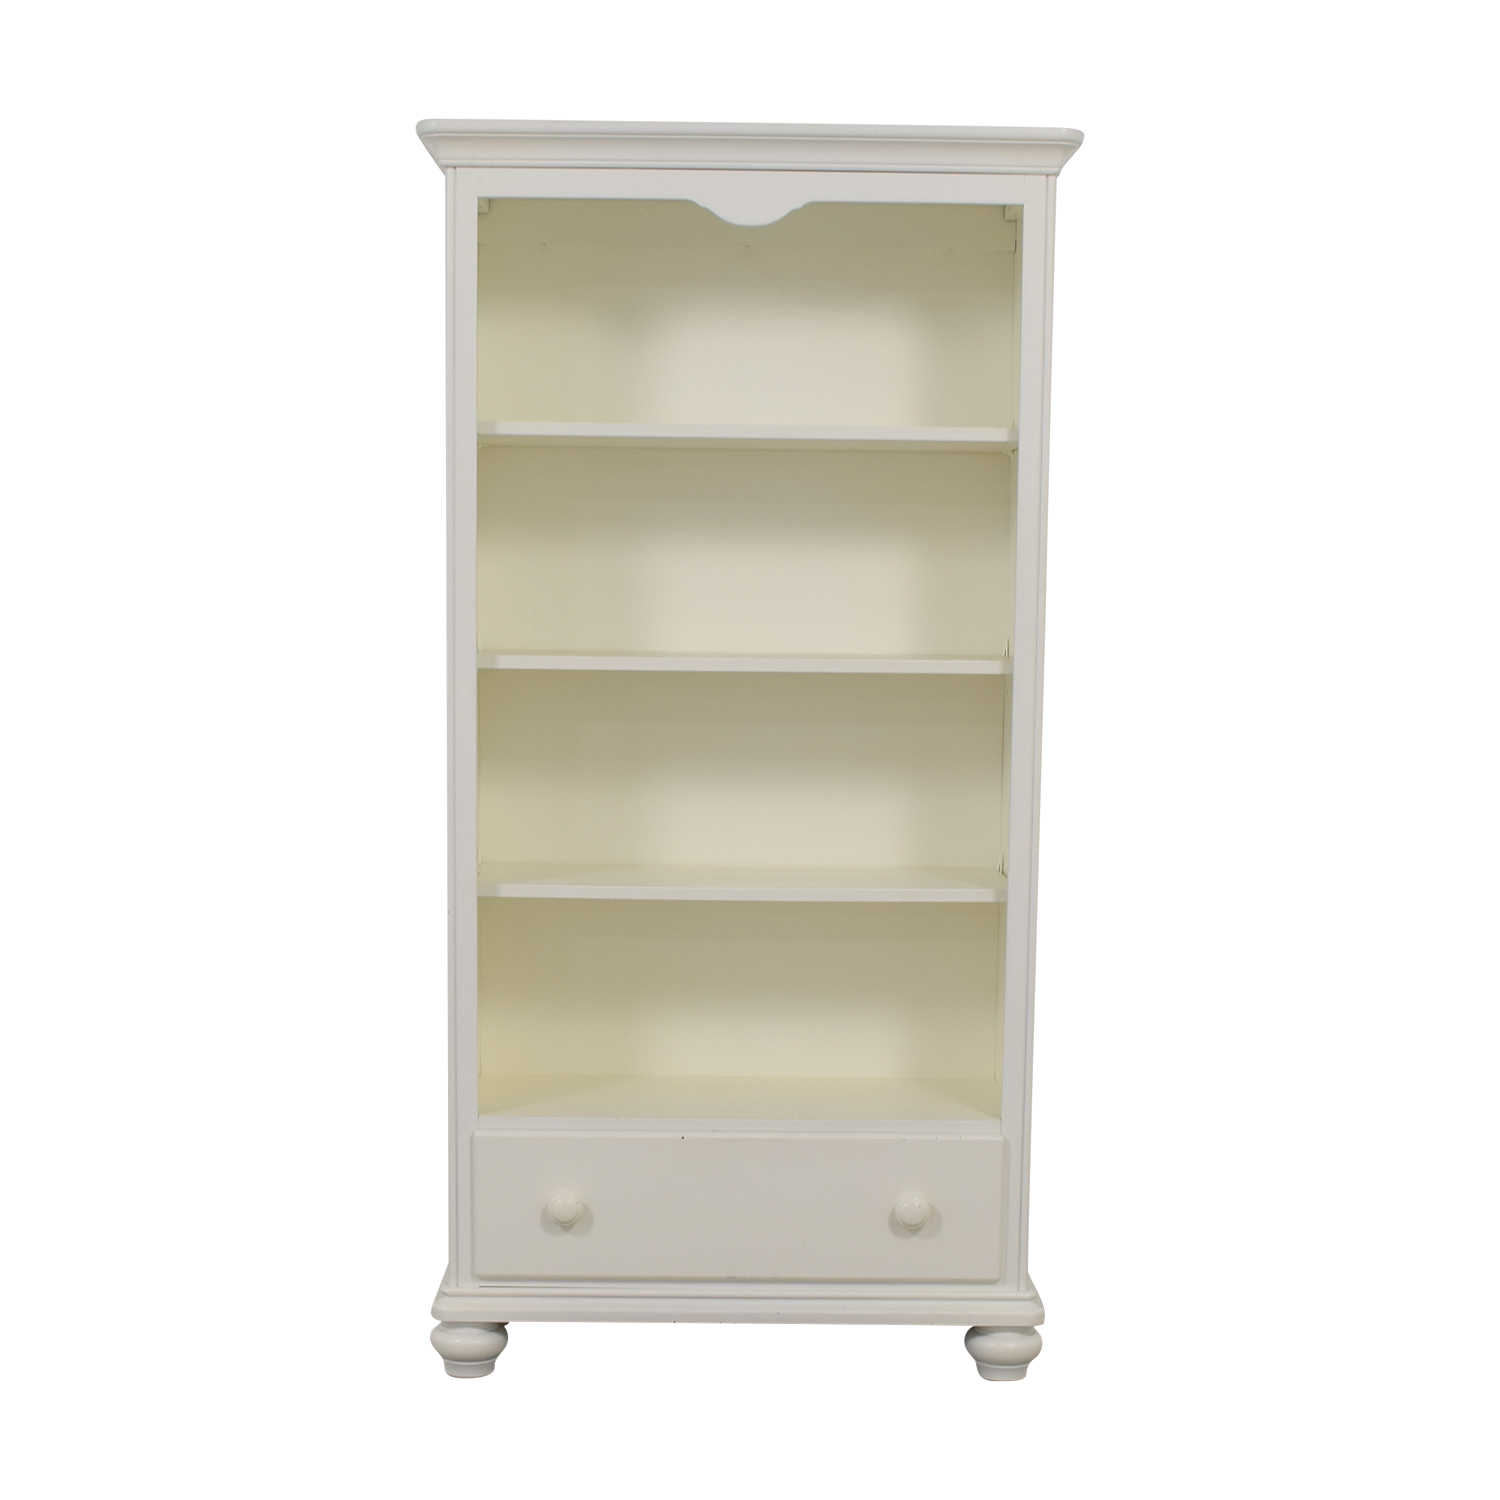 Regazzi Regazzi Lepine Morigeaux White Single Drawer Bookshelf used